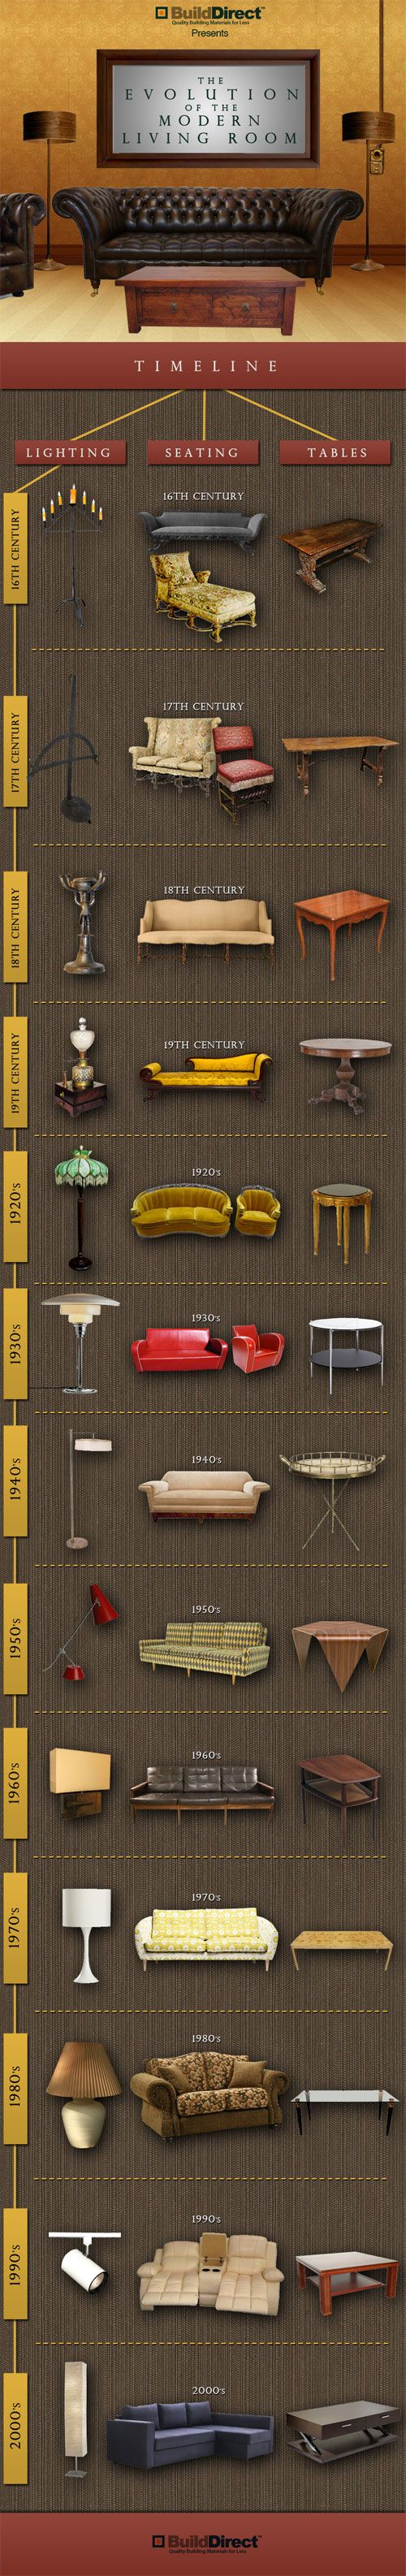 How modern living rooms have changed over the centuries!